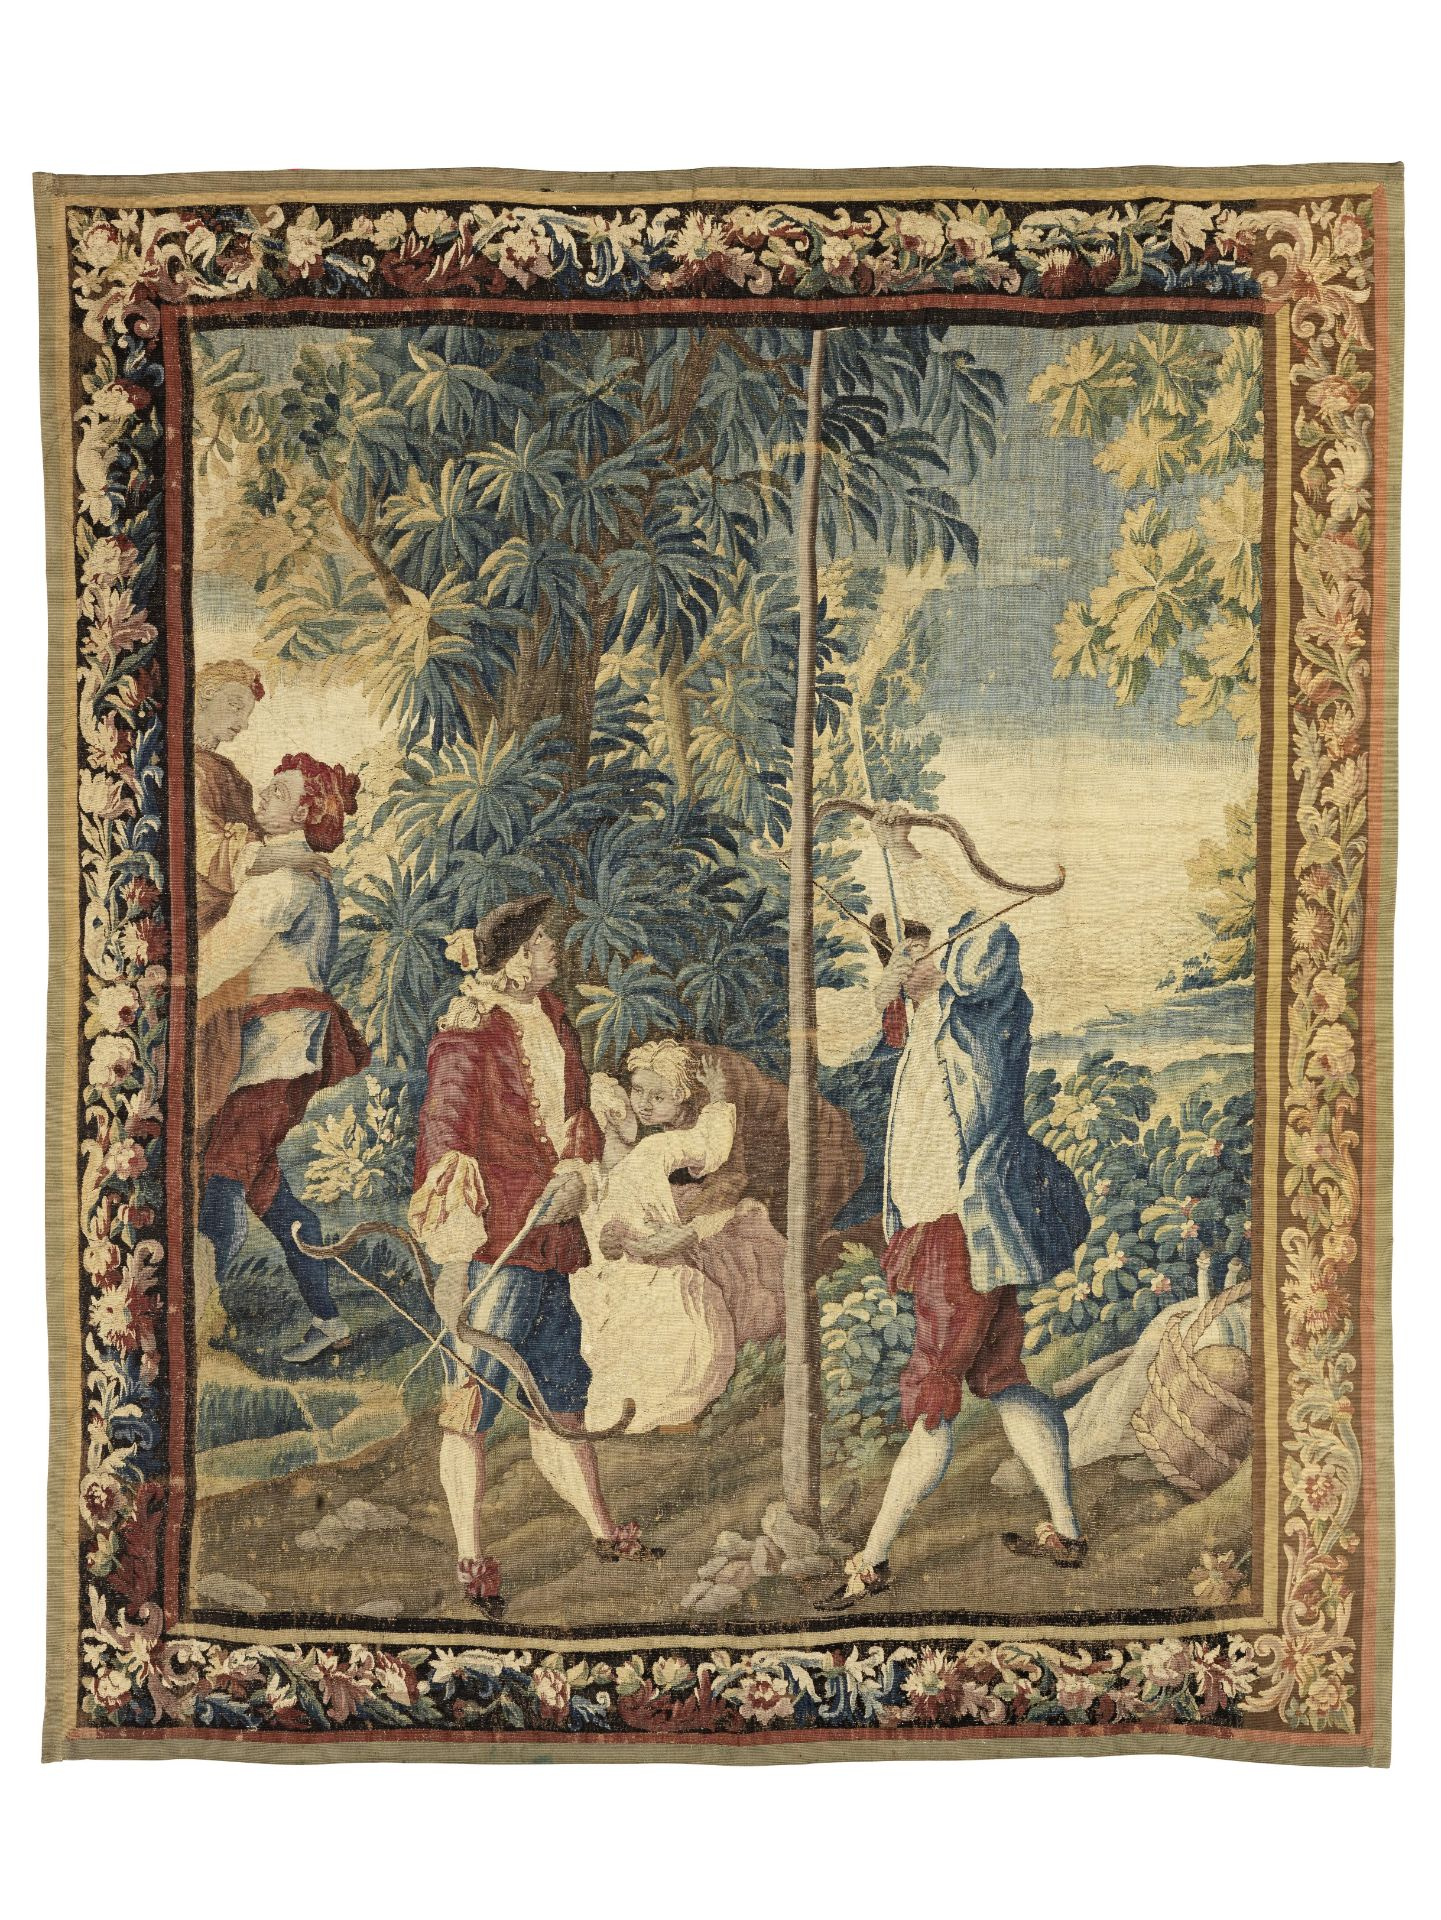 Los 44 - A mid-18th century tapestry, French, circa 1750